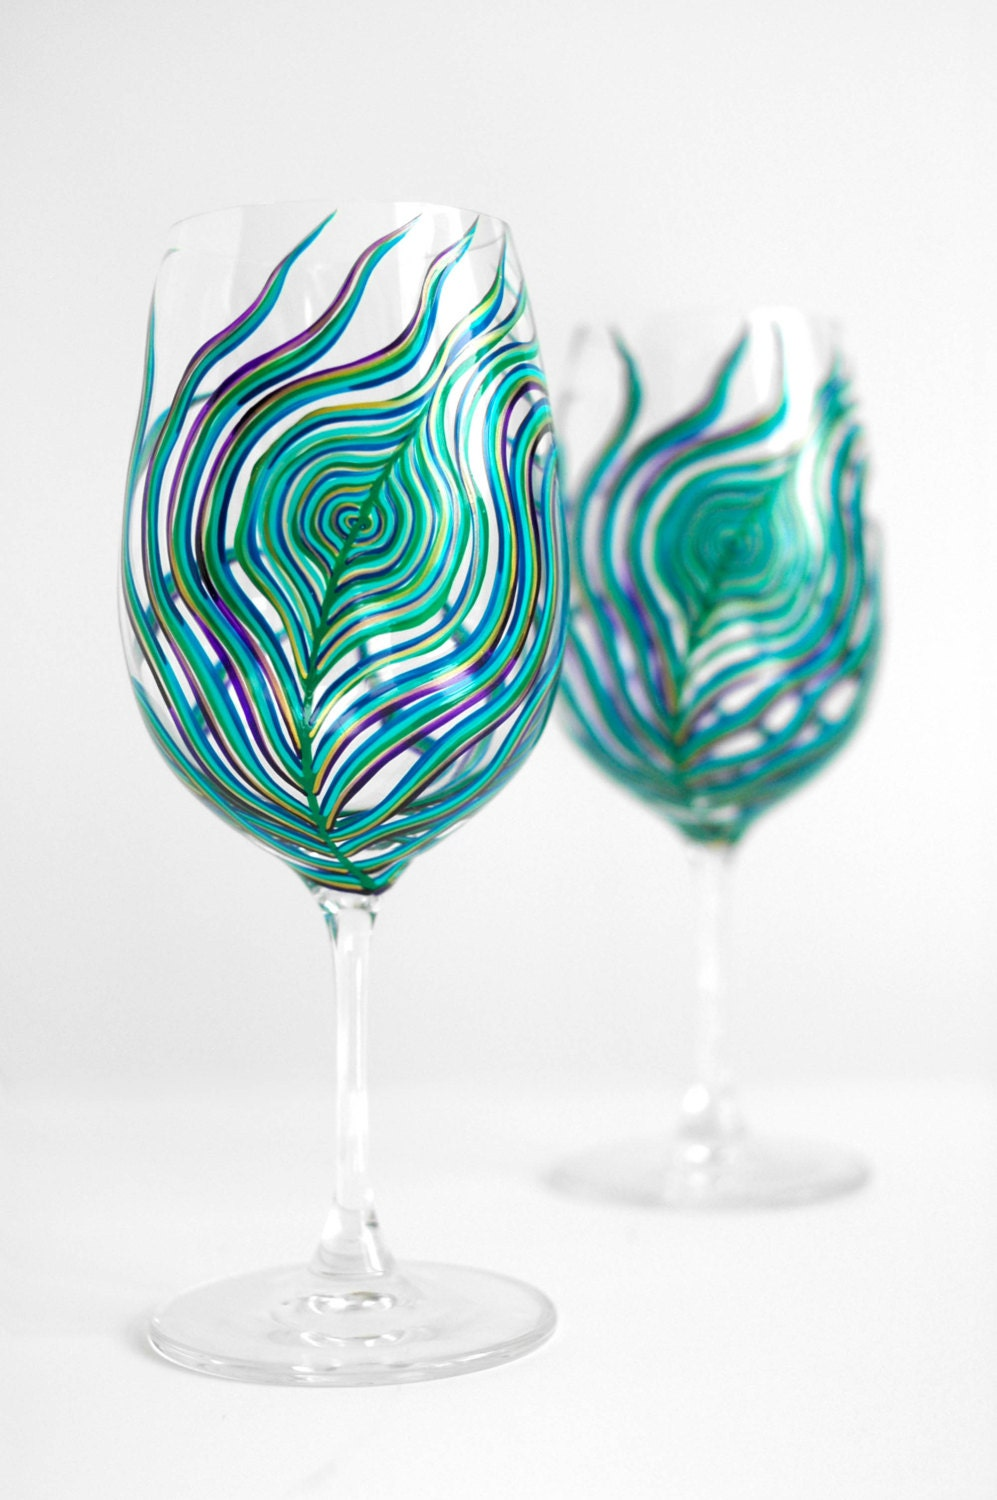 Peacock Feather Wine Glasses - Set of 2 Hand Painted Peacock Glasses in Sapphire, Emerald, Aqua, Plum and Gold